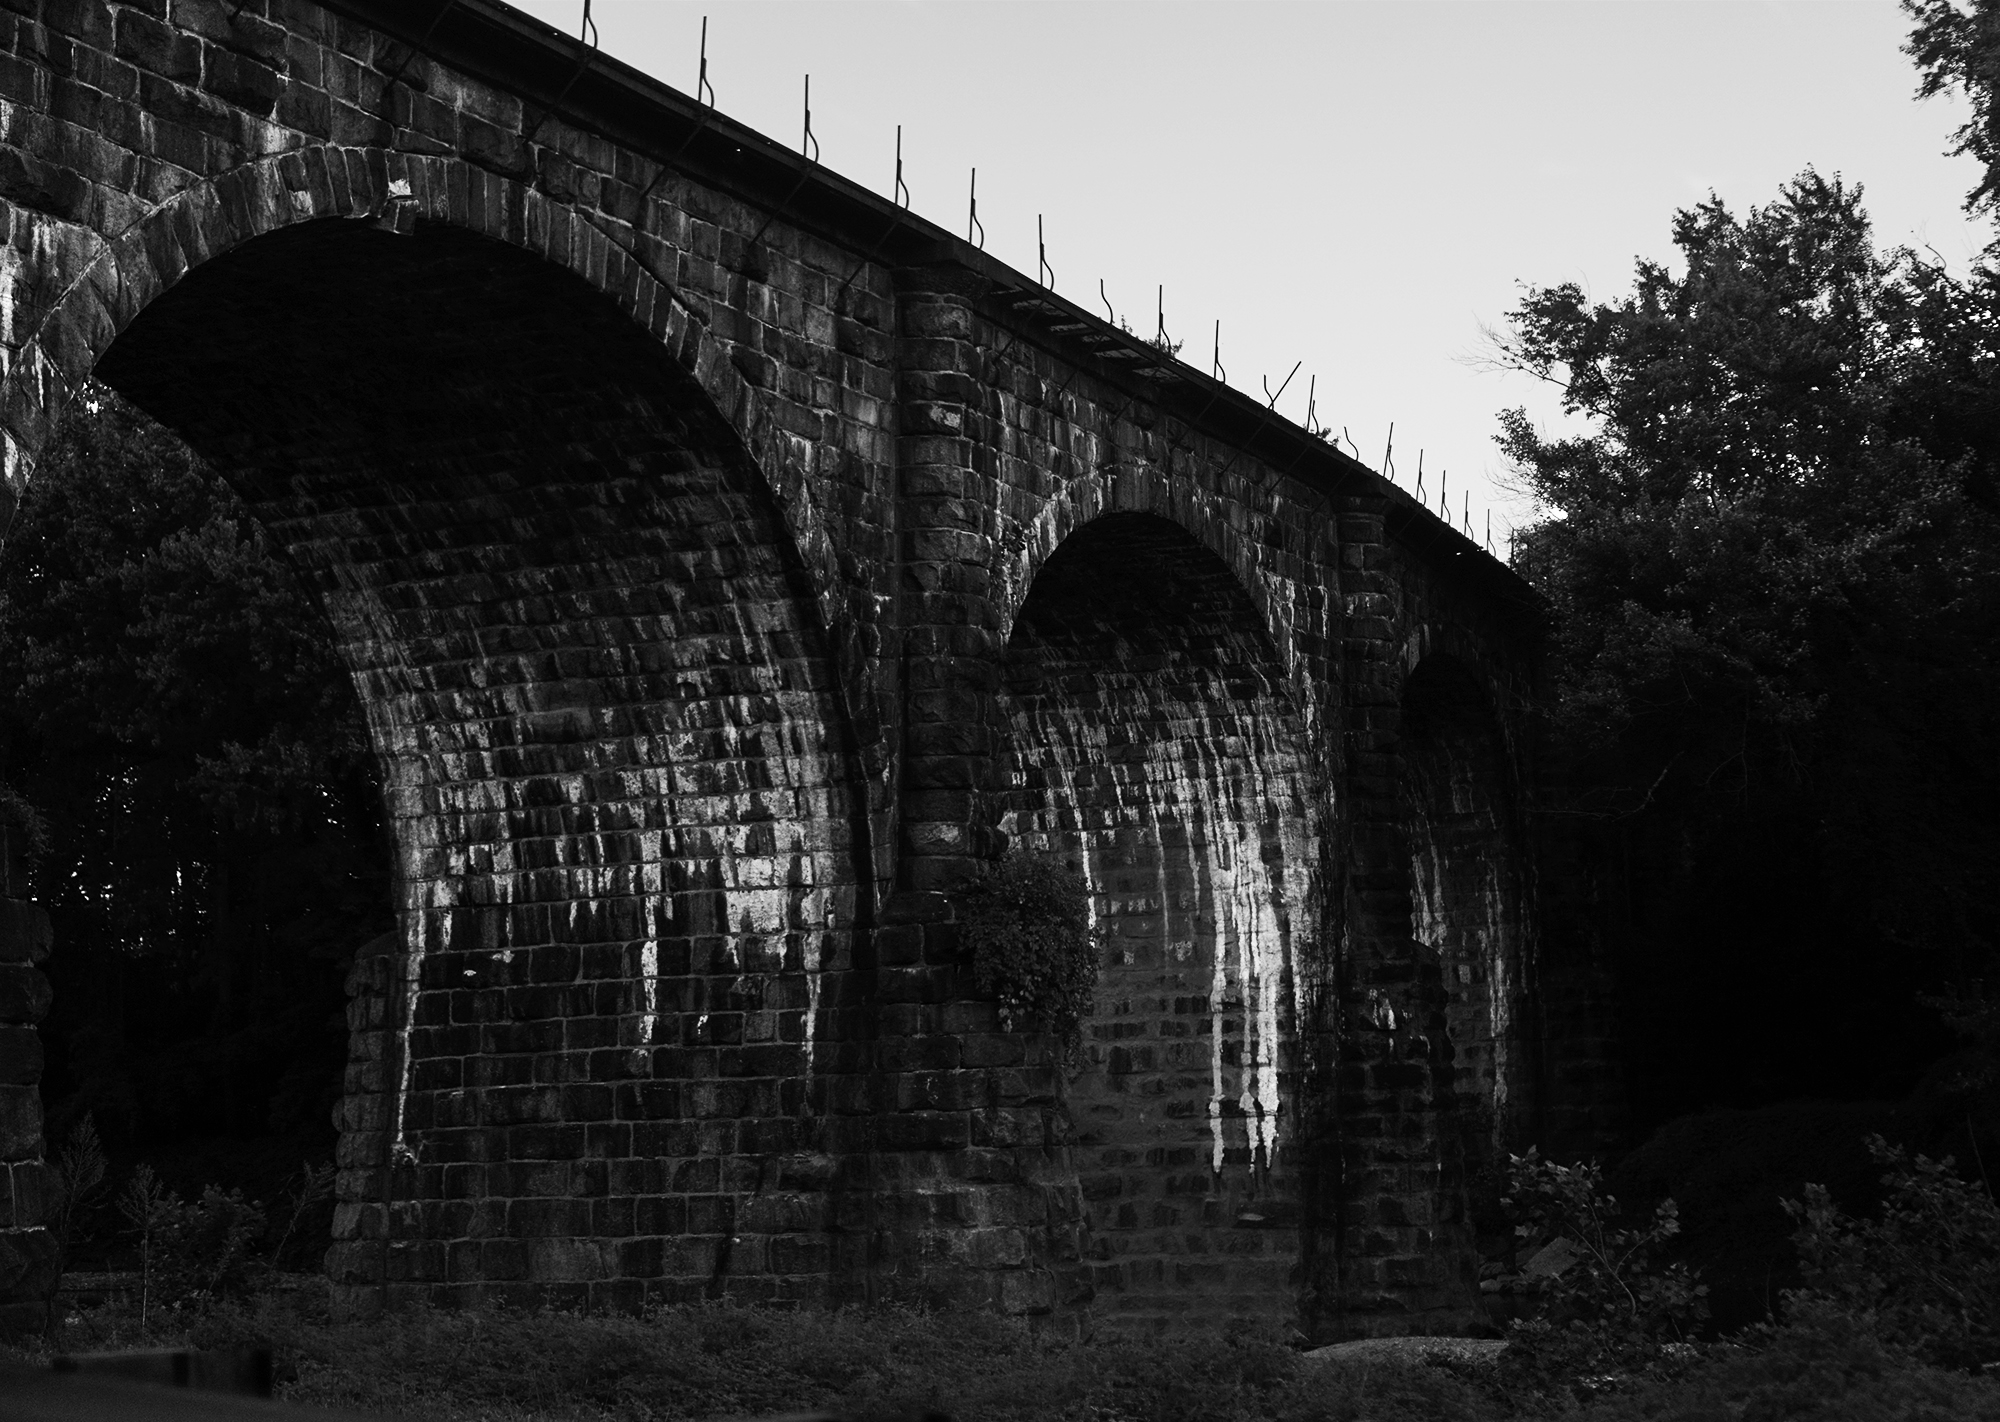 Stone bridge at the entrance to Patapsco Valley State Park, Maryland / Darker than Green